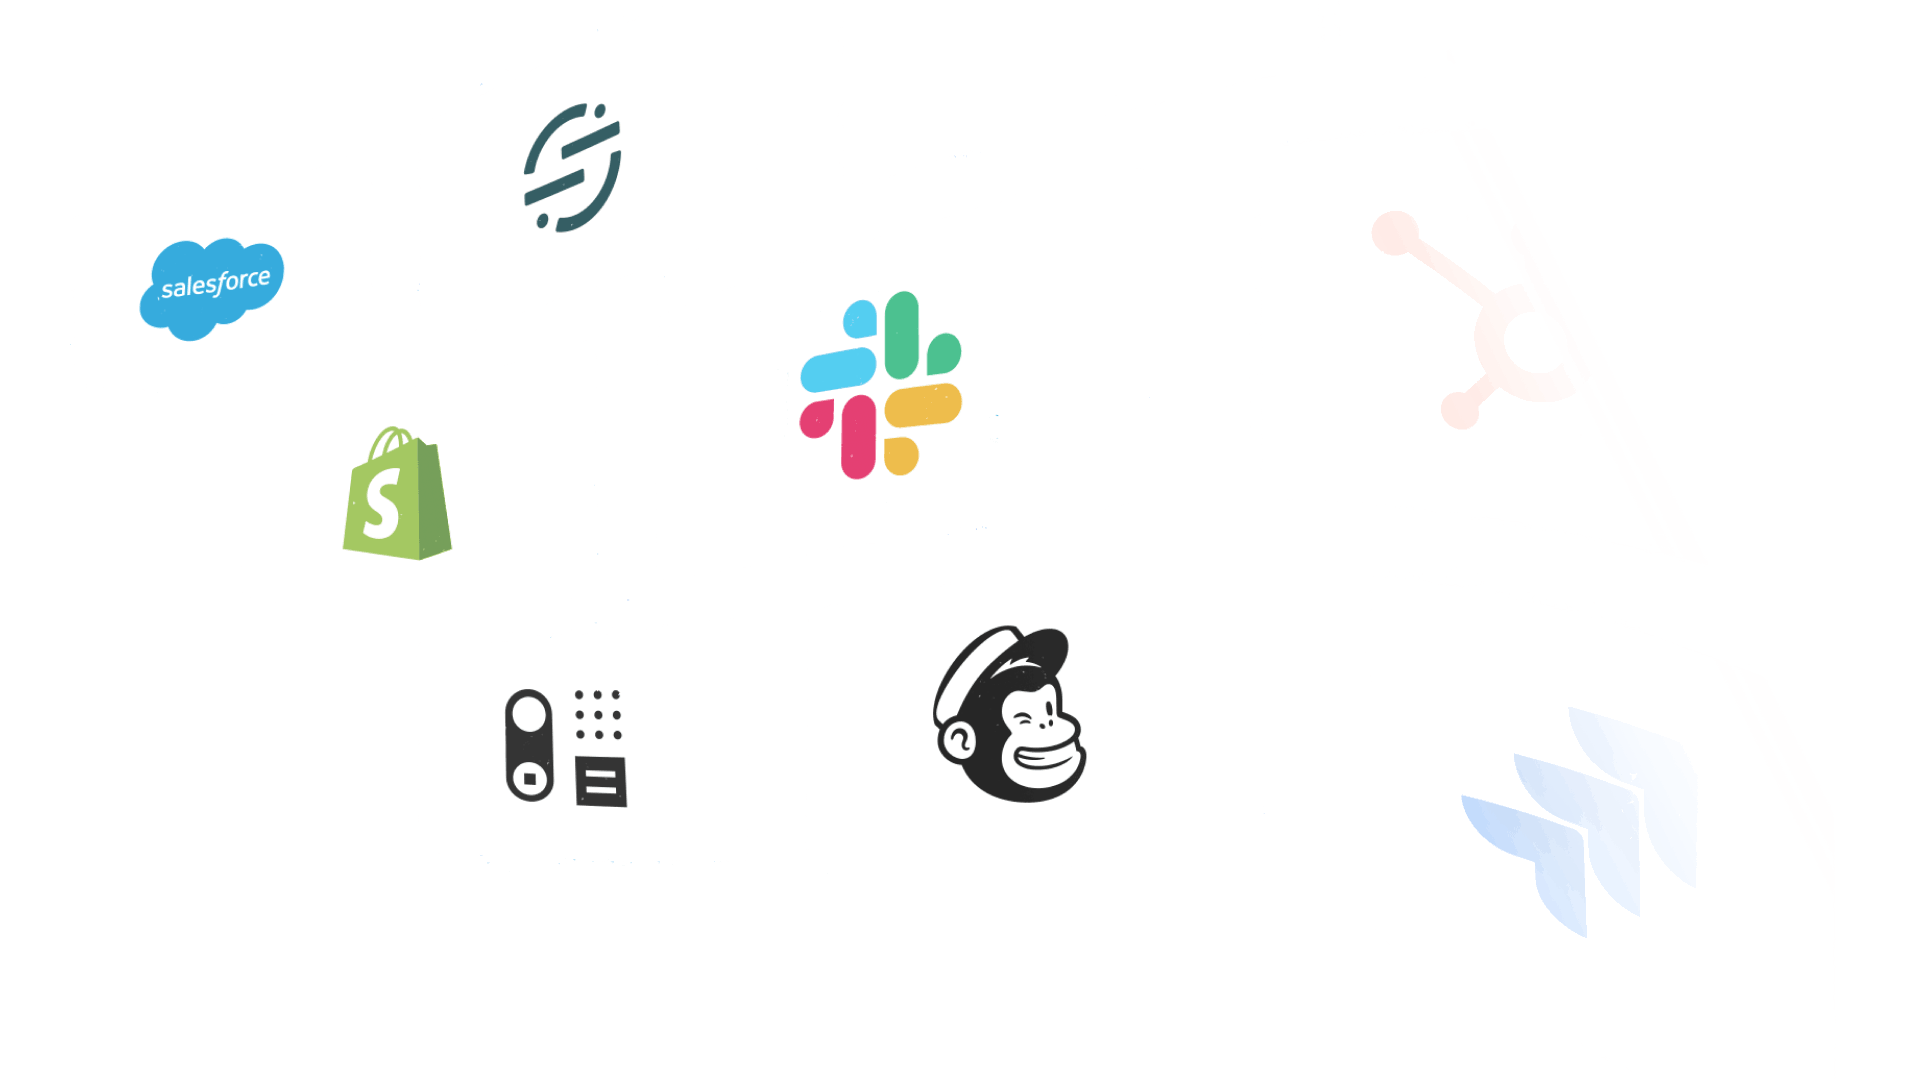 Grid of logos representing software that Help Scout integrates with